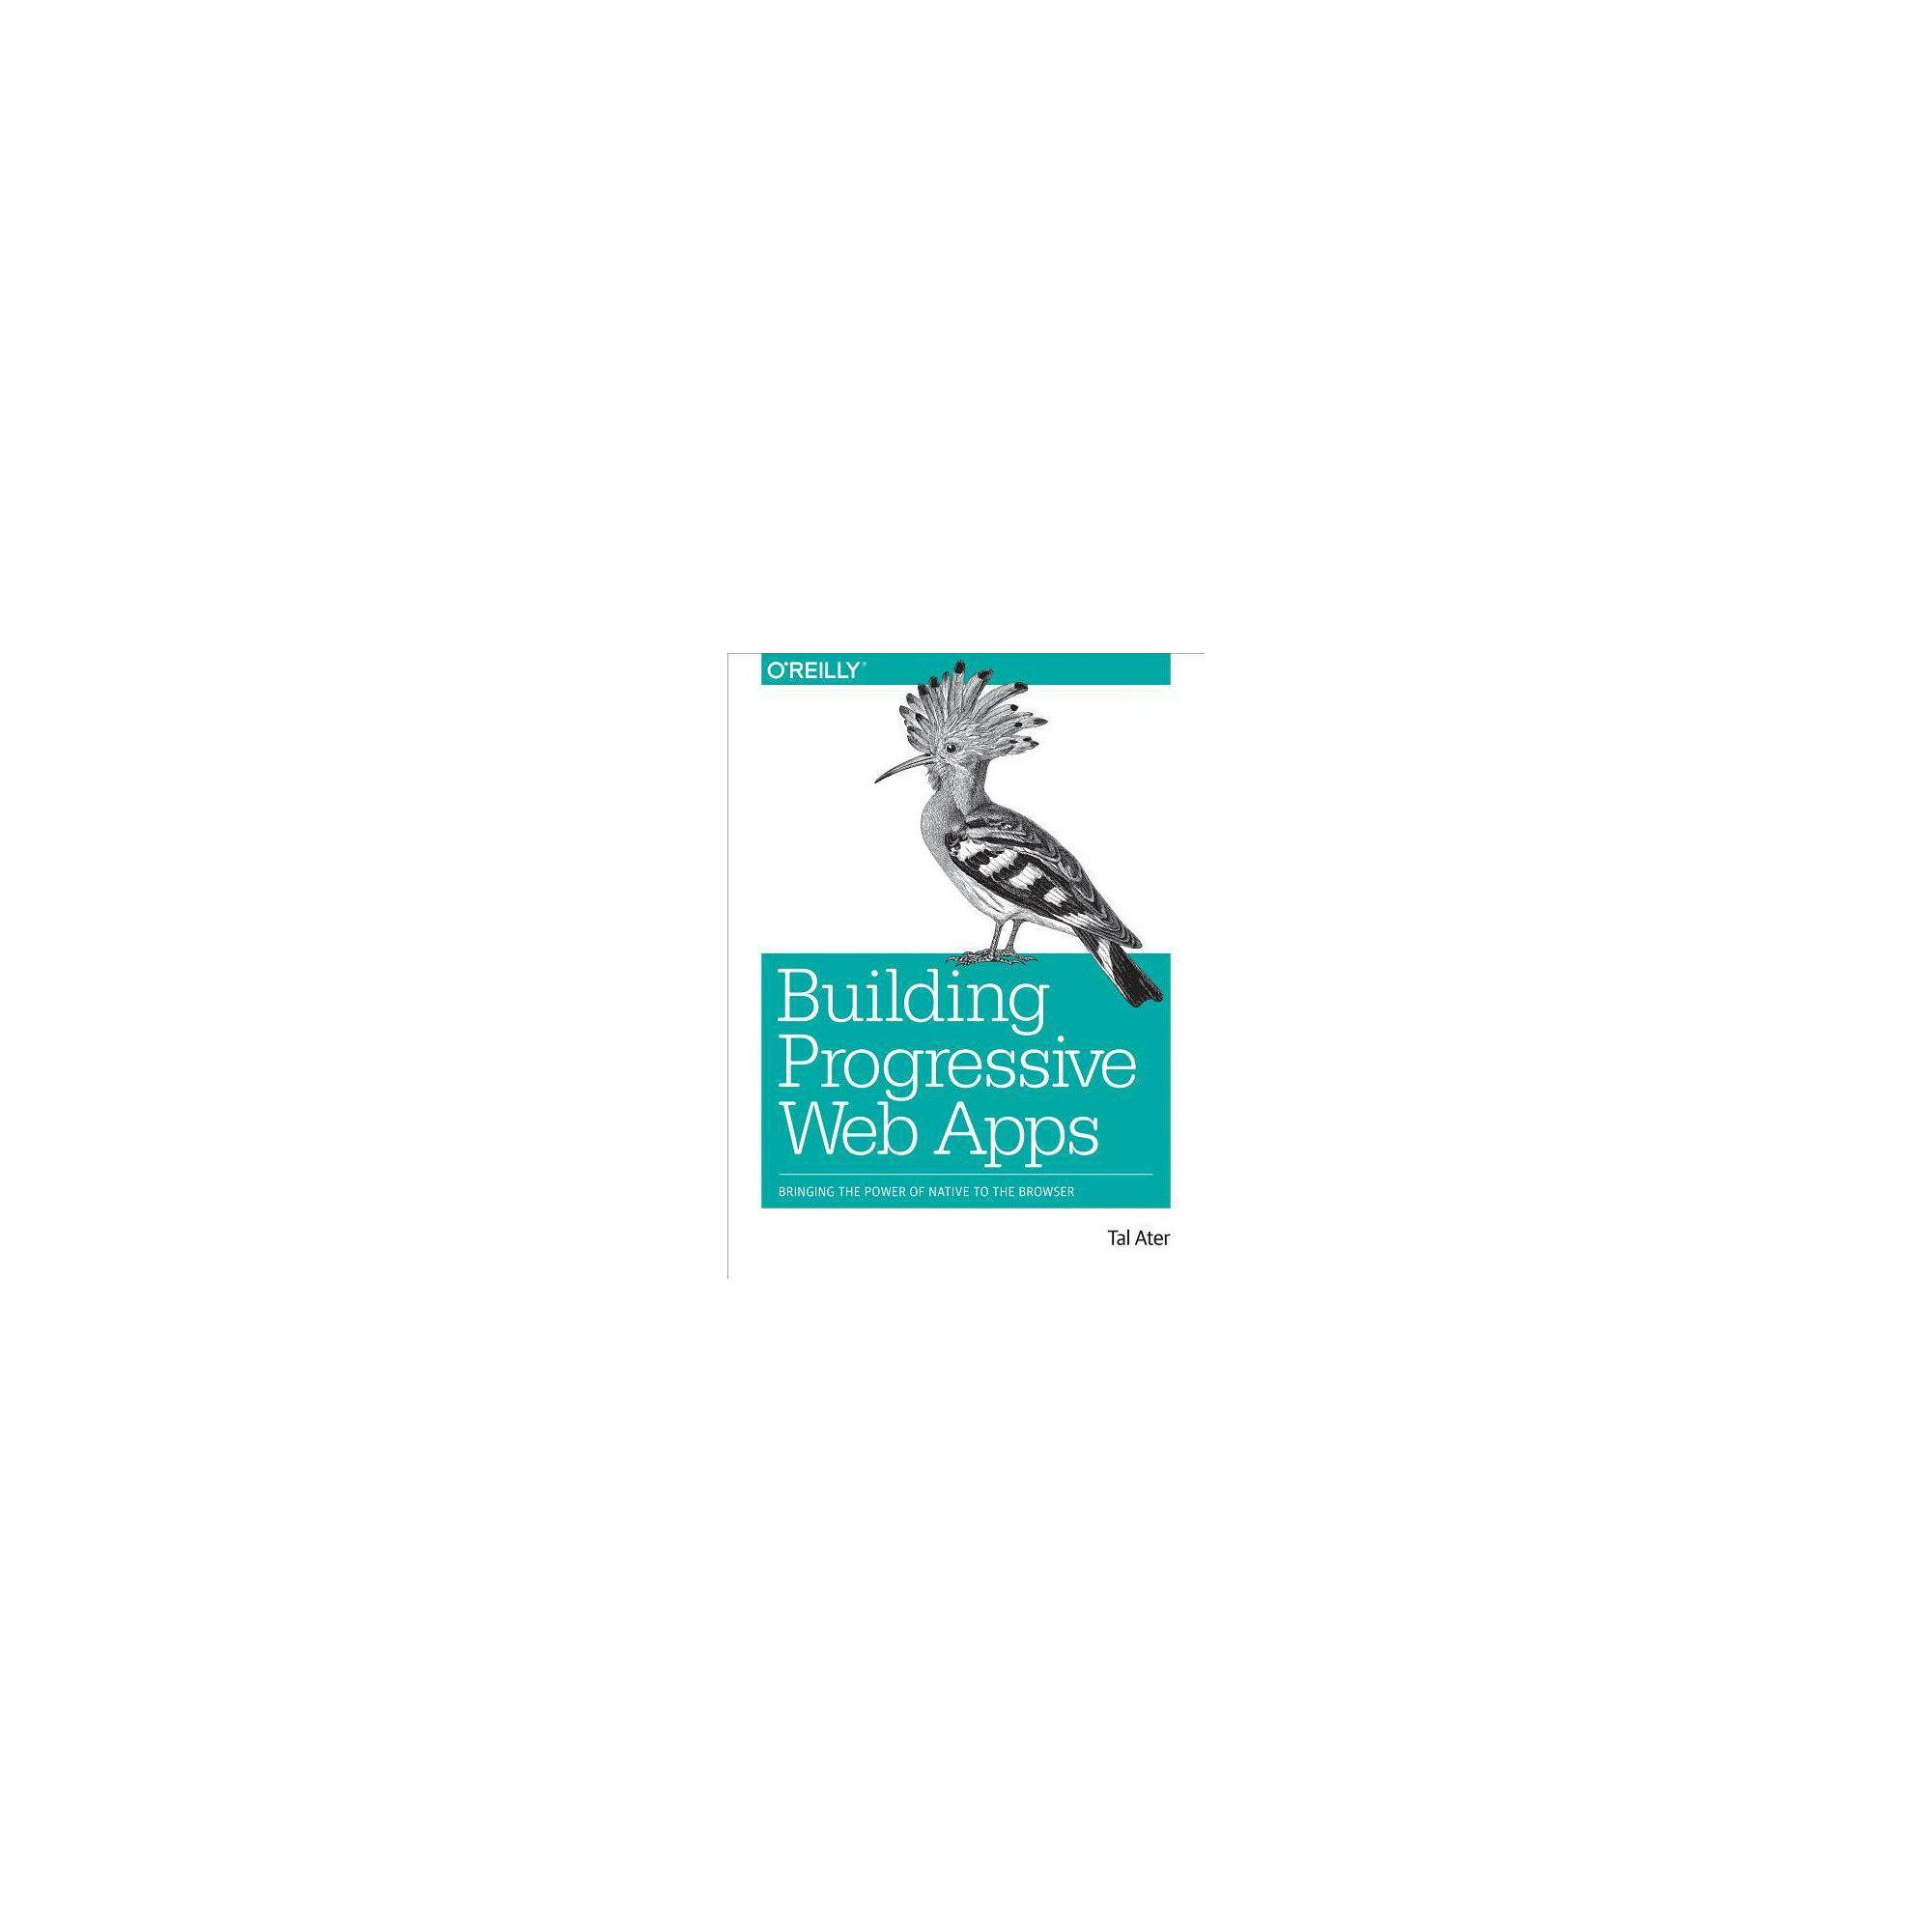 Building Progressive Web Apps by Tal Ater (Paperback